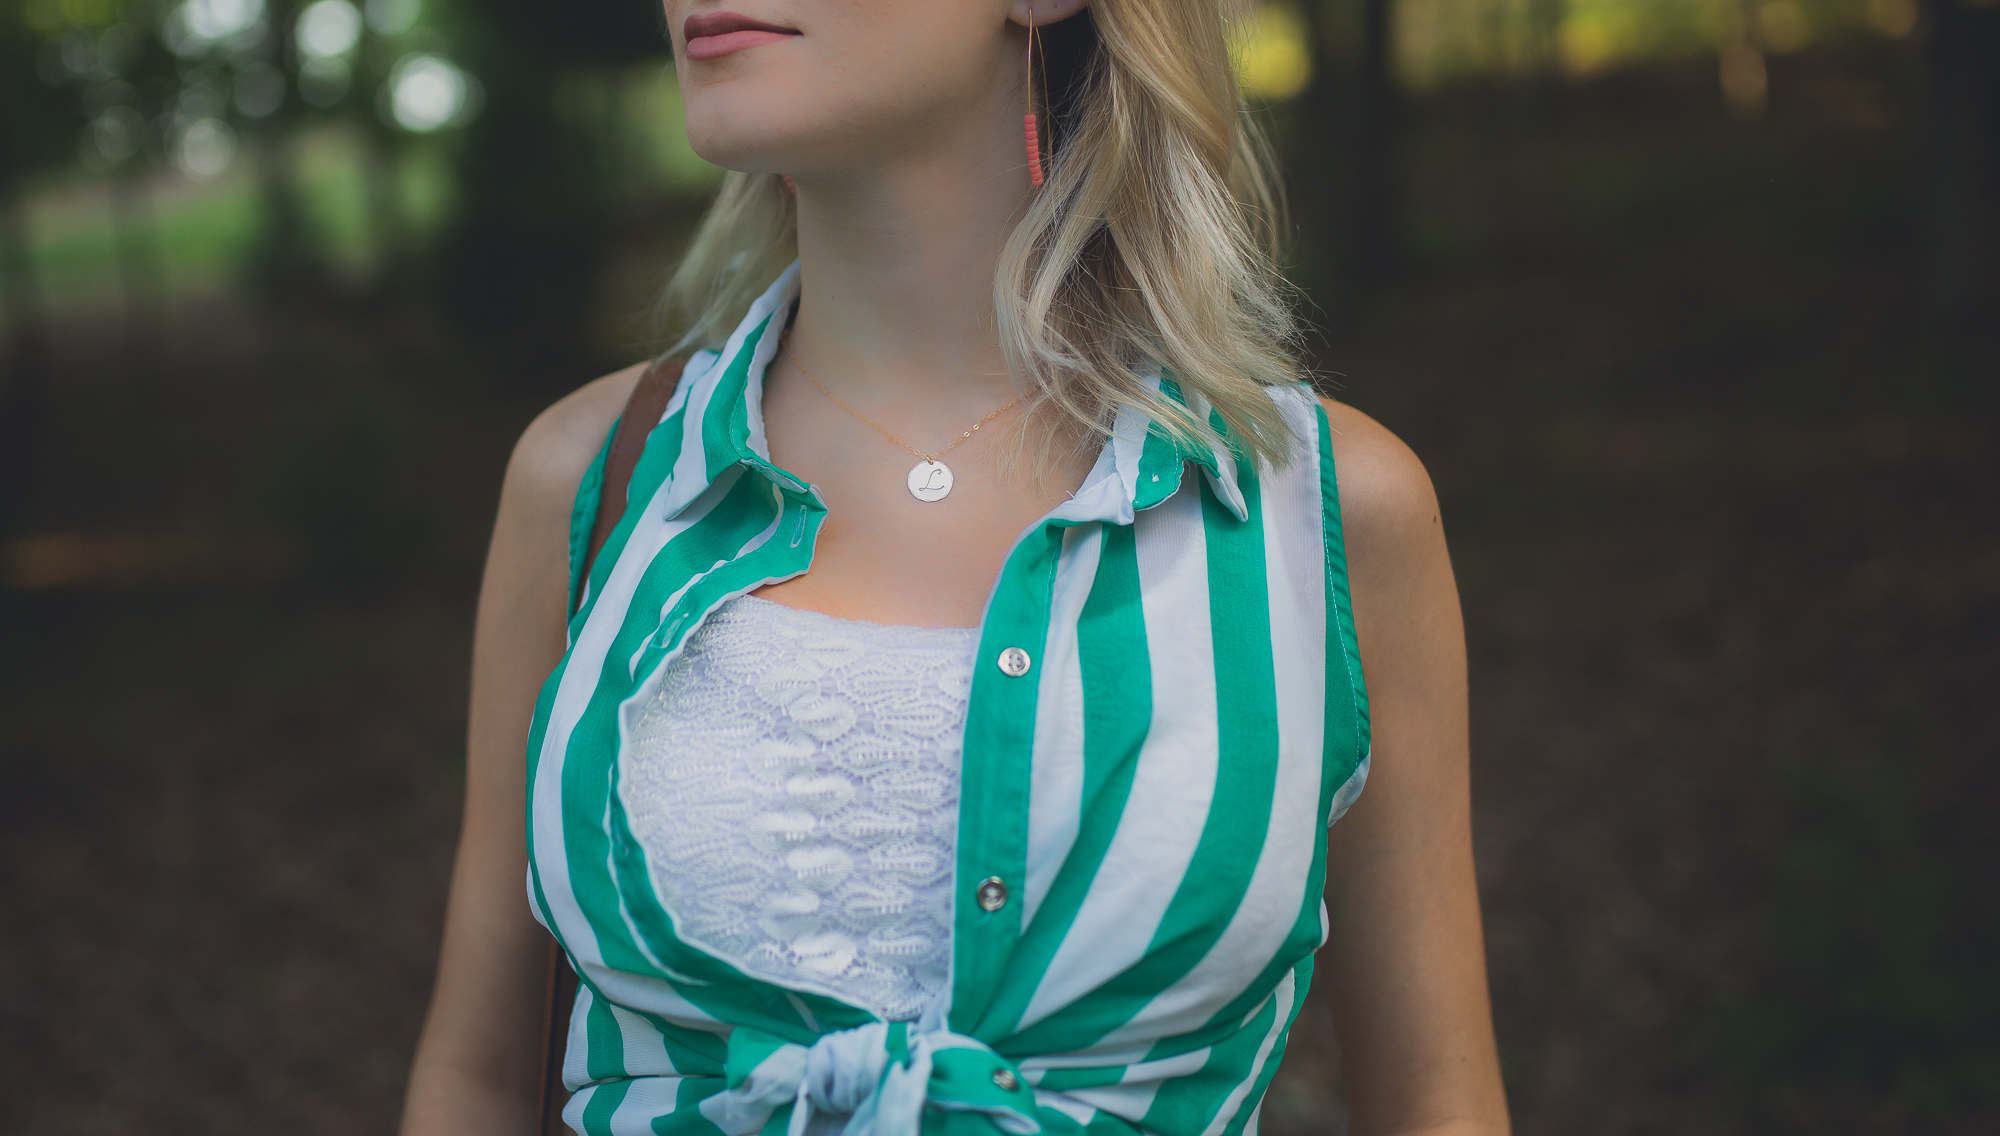 Fashion, lifestyle, and beauty blogger/ vlogger wearing maternity fashion a white sundress with green stripe accents and jewelry from CY Design Studio and Tory Burch Sandals.